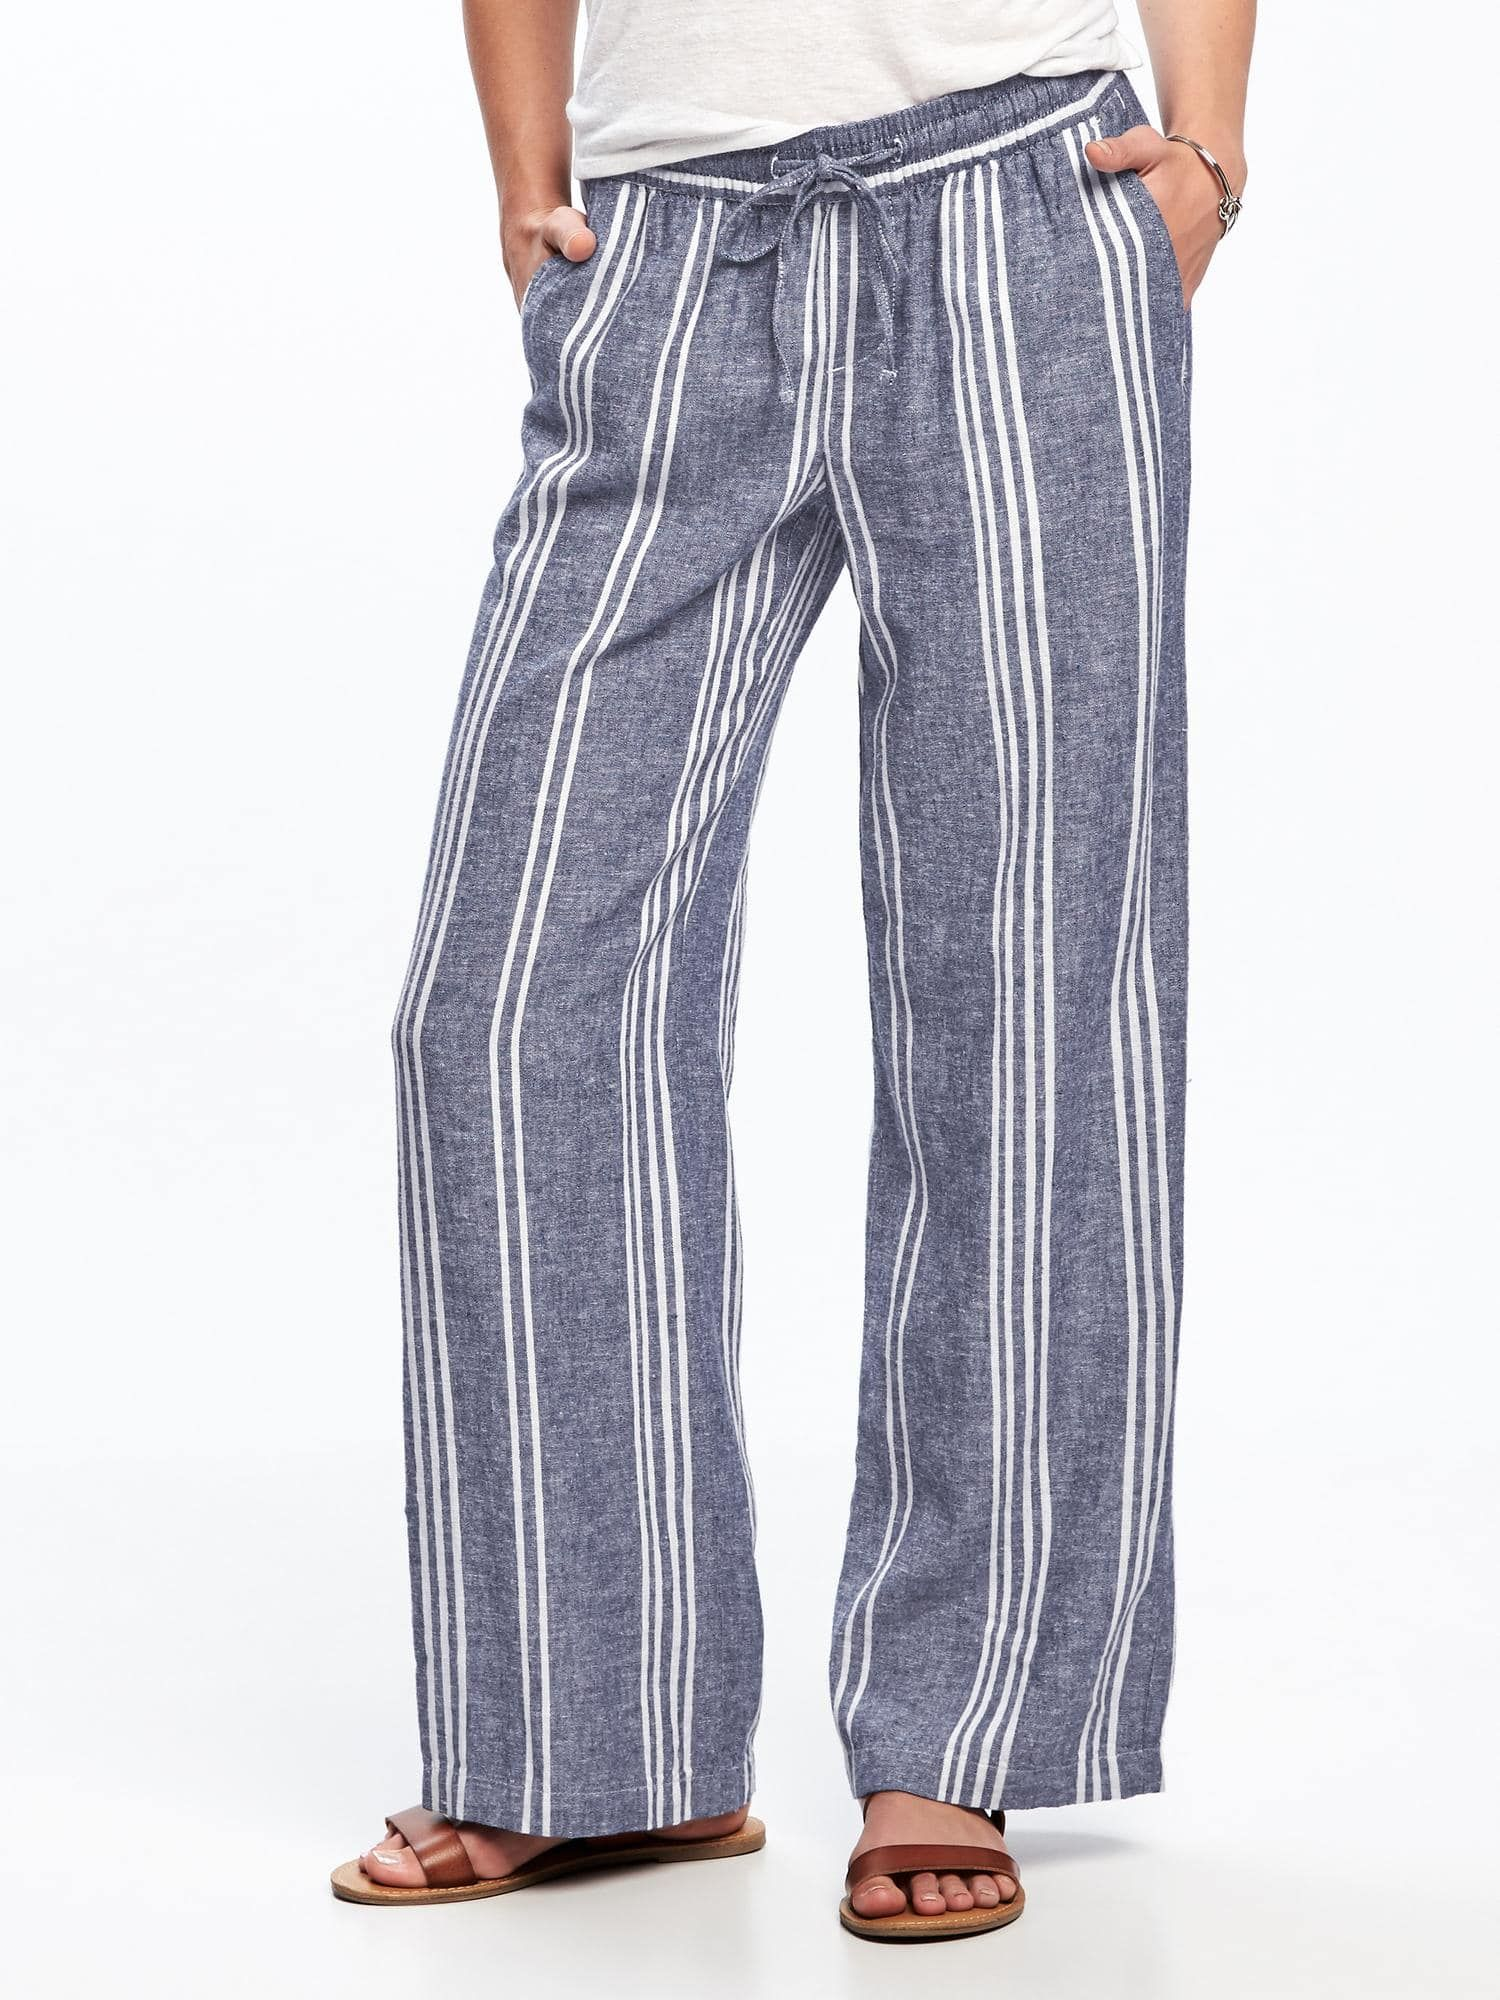 Women's Clothing Clever Hot Sale Sexy Women Pants High Waist Flare Wide Leg Lady Long Trousers Fashion Striped Pants Spare No Cost At Any Cost Bottoms